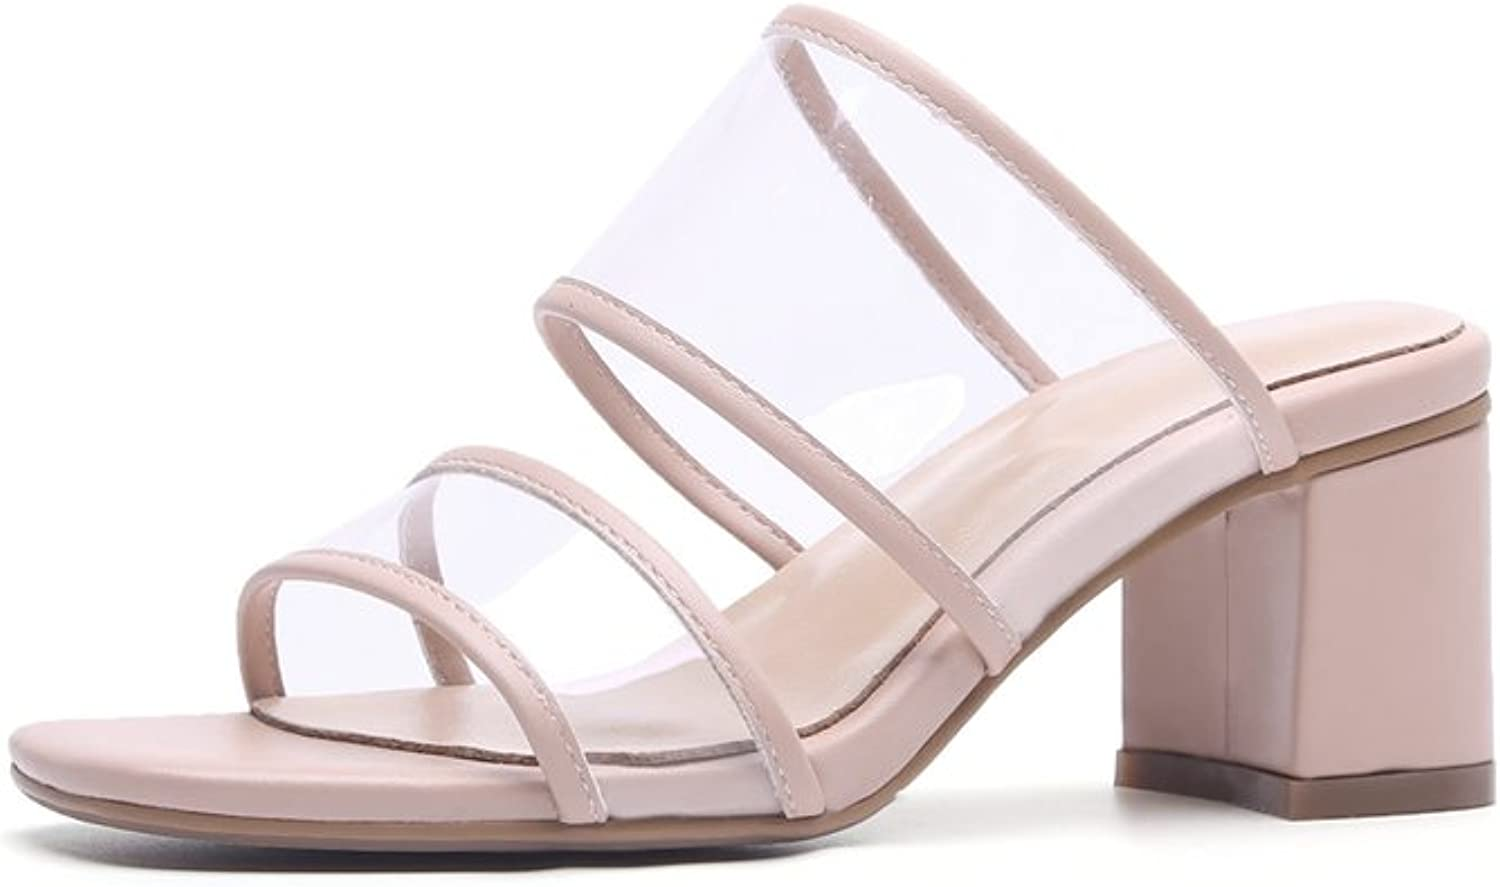 Exing Women's shoes 2018 New Summer Fall Sandals Oxford Square Toe Peep Toe Ladies shoes Rough Heel Sandals Slipper for Office & Career Dress